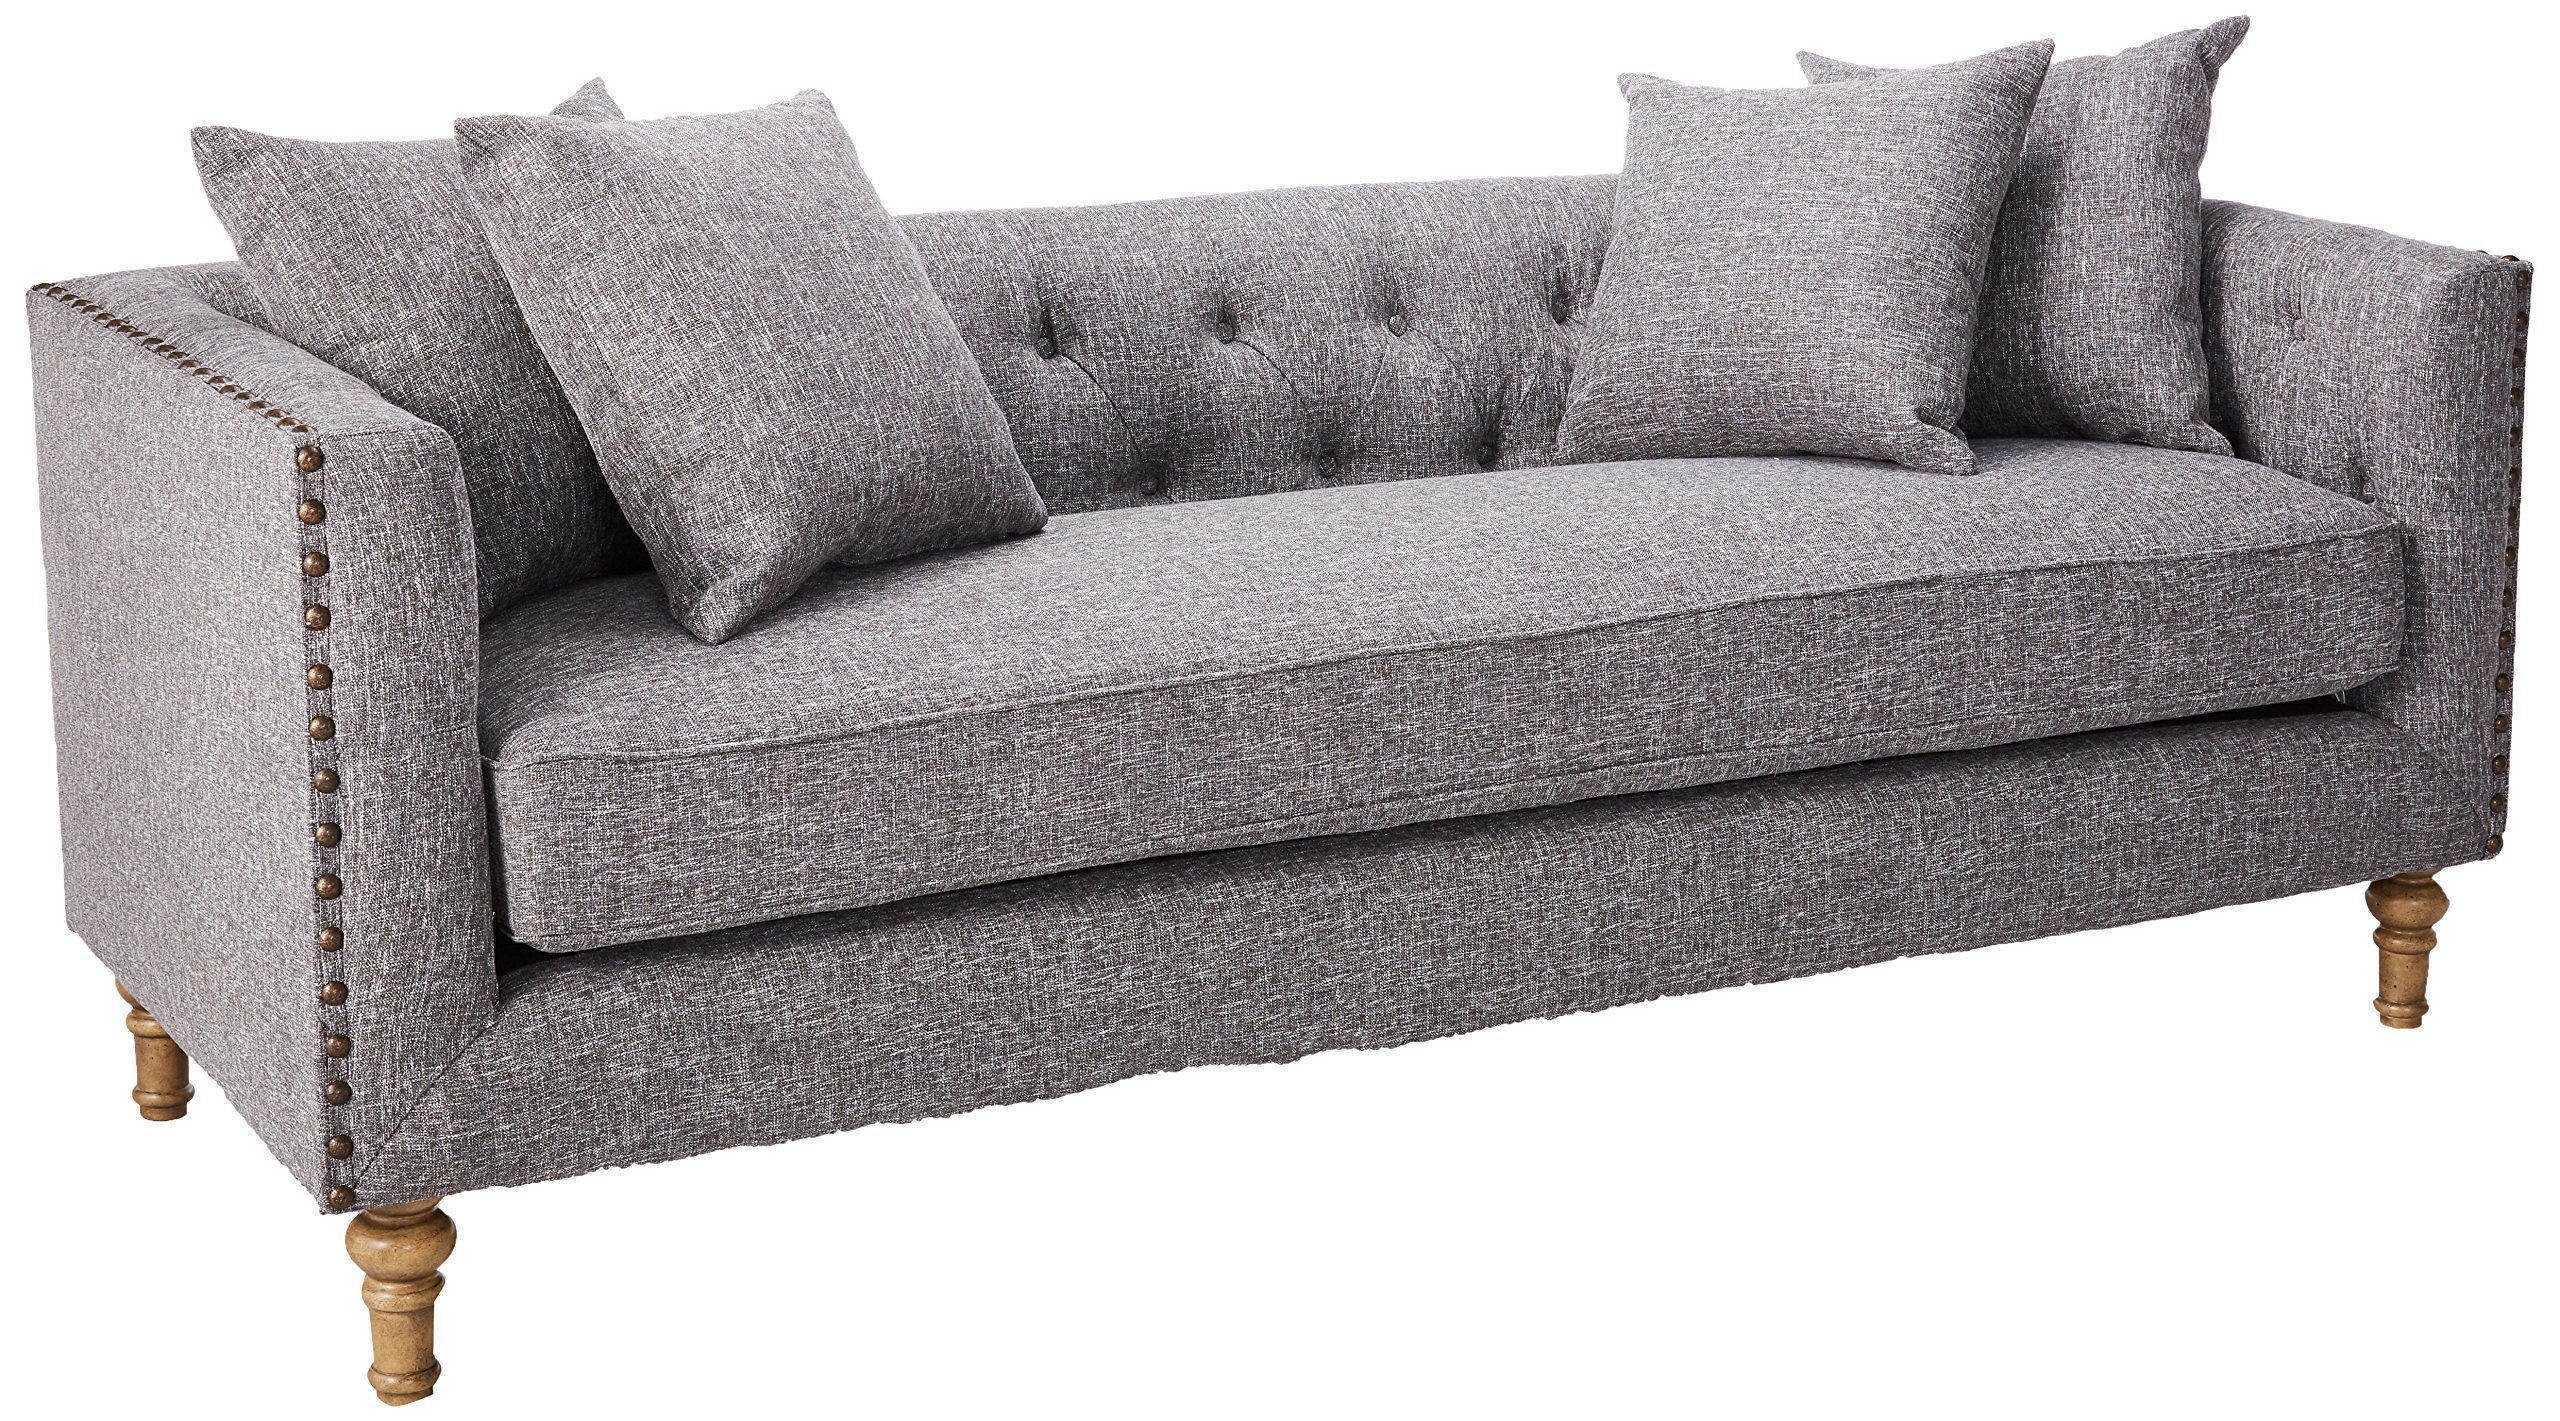 Coaster Home Furnishings 505771 Ellery Collection Sofa, Grey